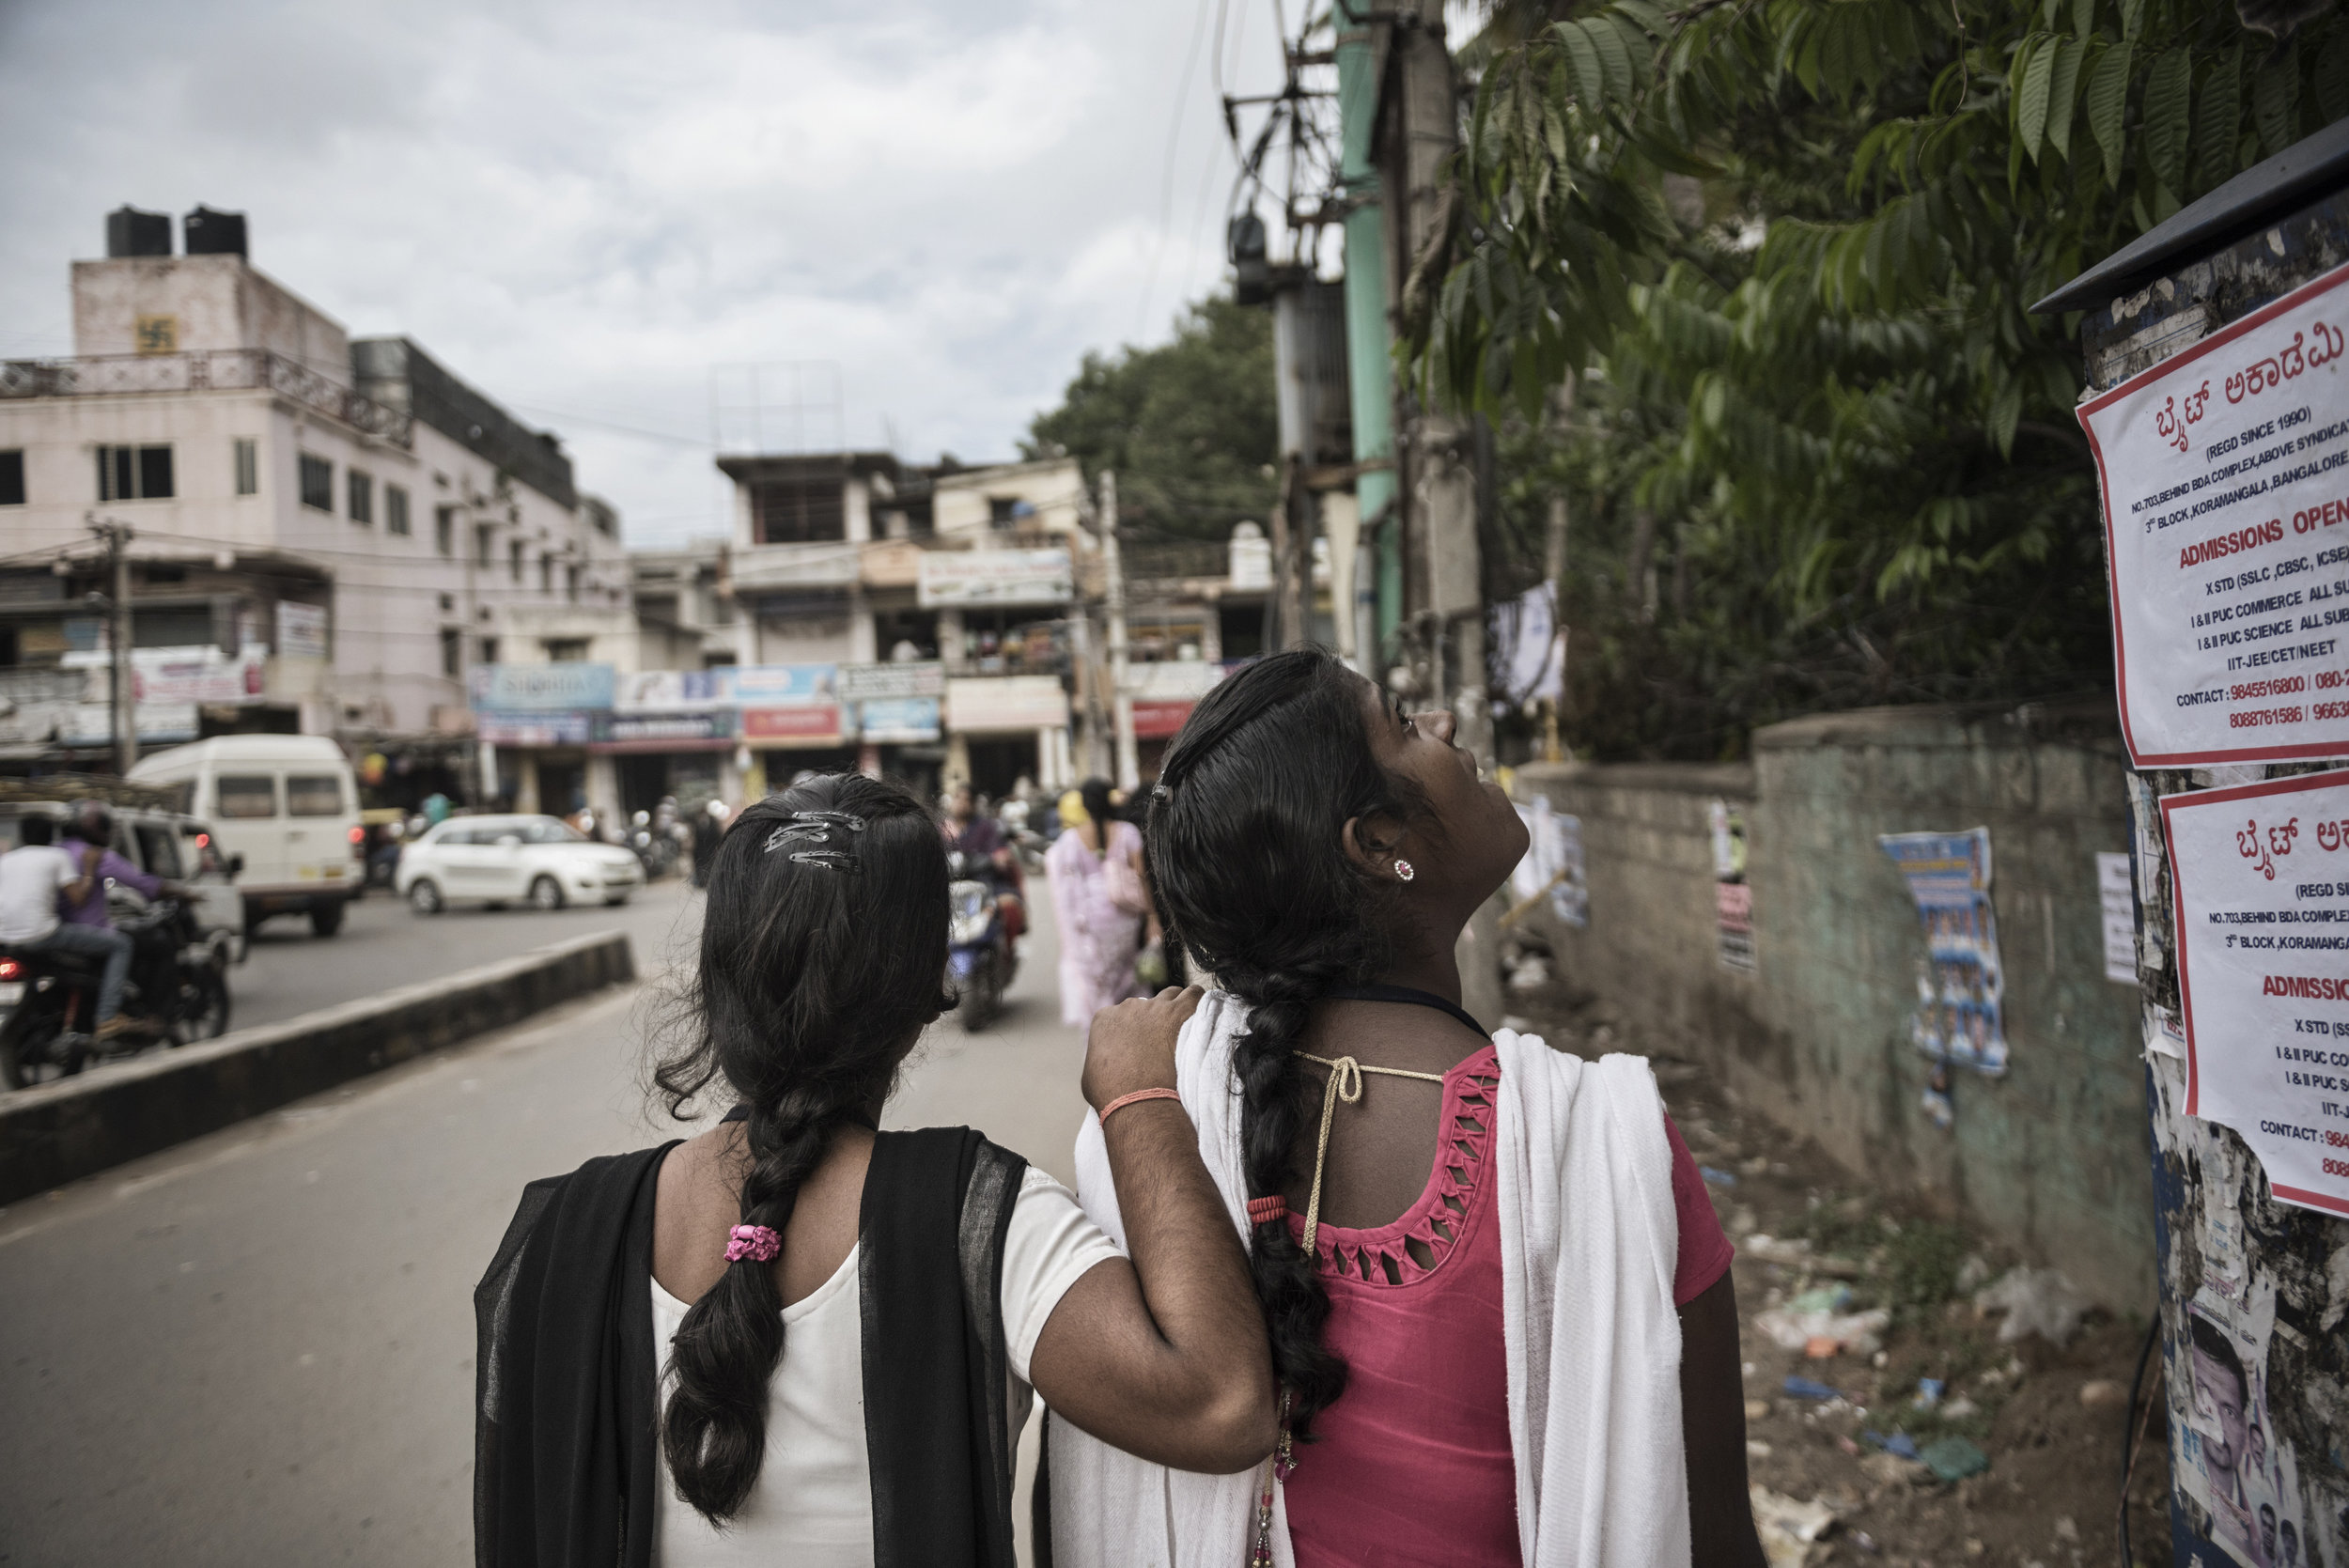 India, Bangalore, June 2016, Sisters Shashi and Prabhati, in awe of the city of Bangalore, walk from work at the factory to their dorm.